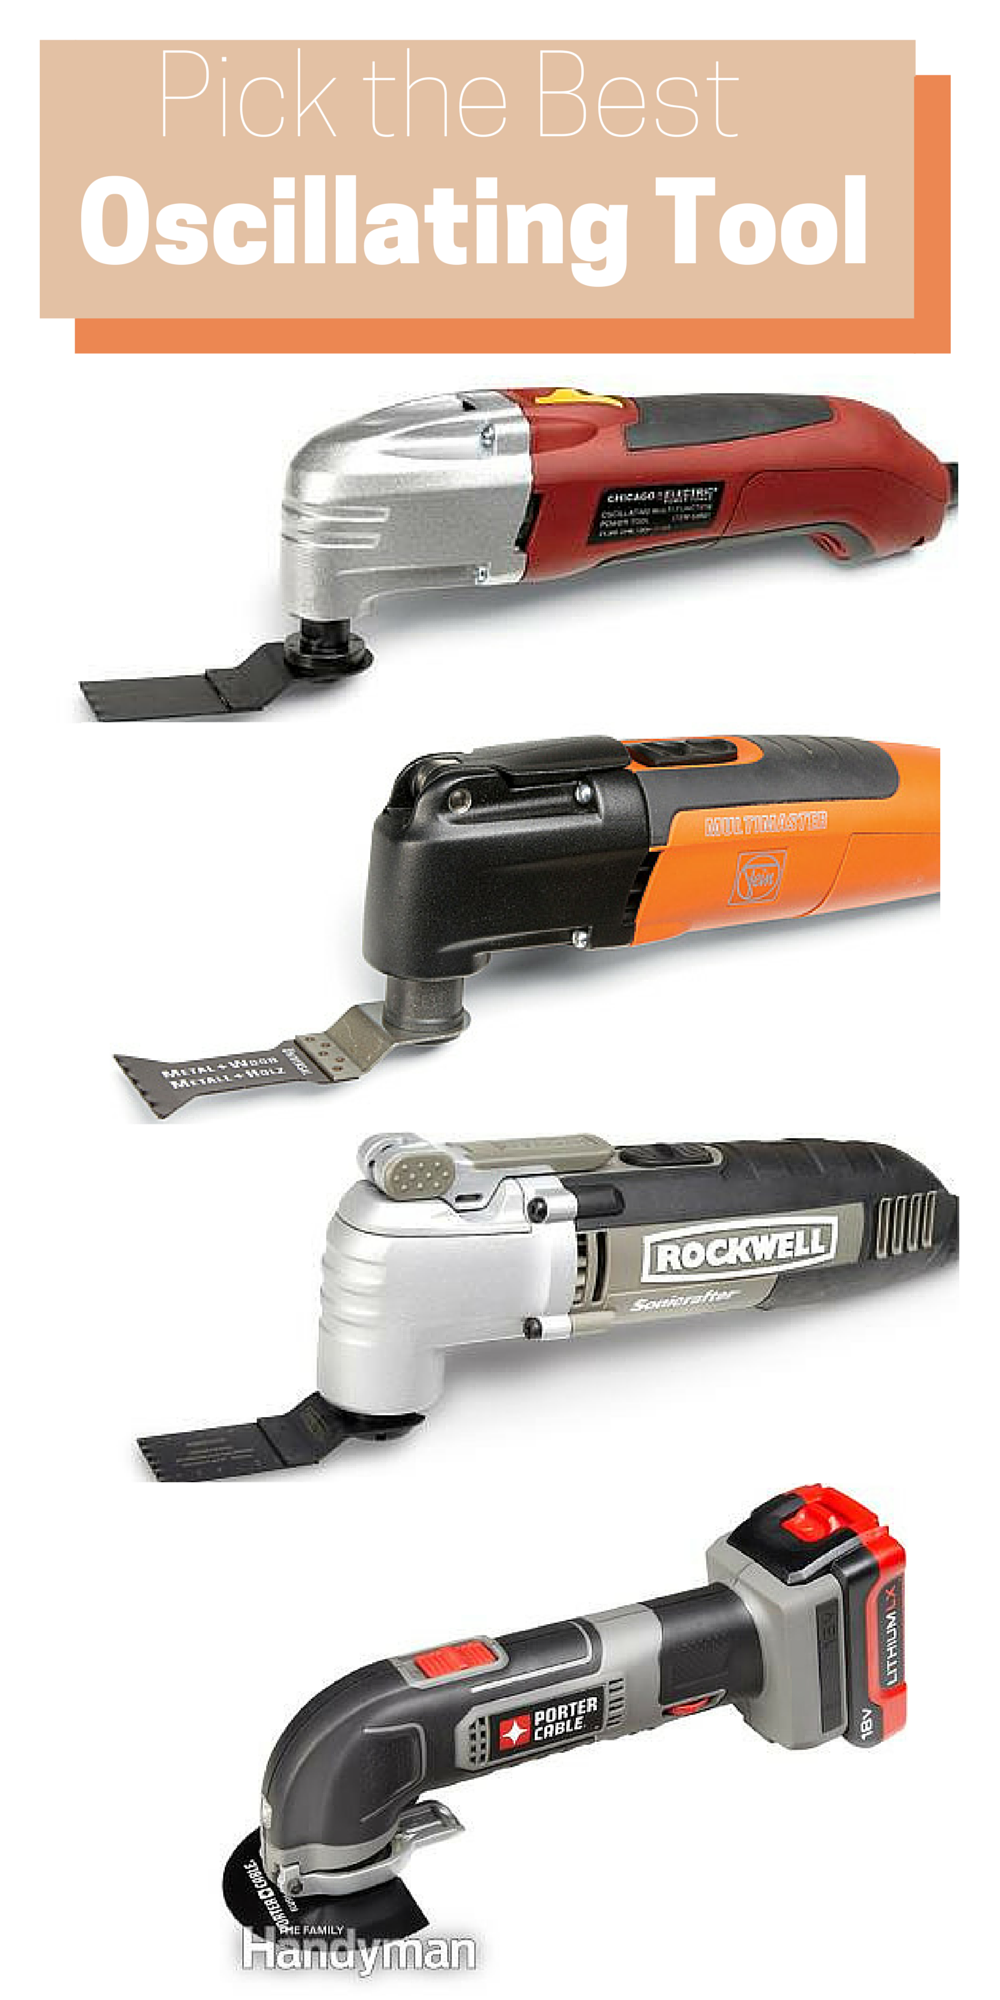 Oscillating Tool Reviews Learn How To Find The Best Oscillating